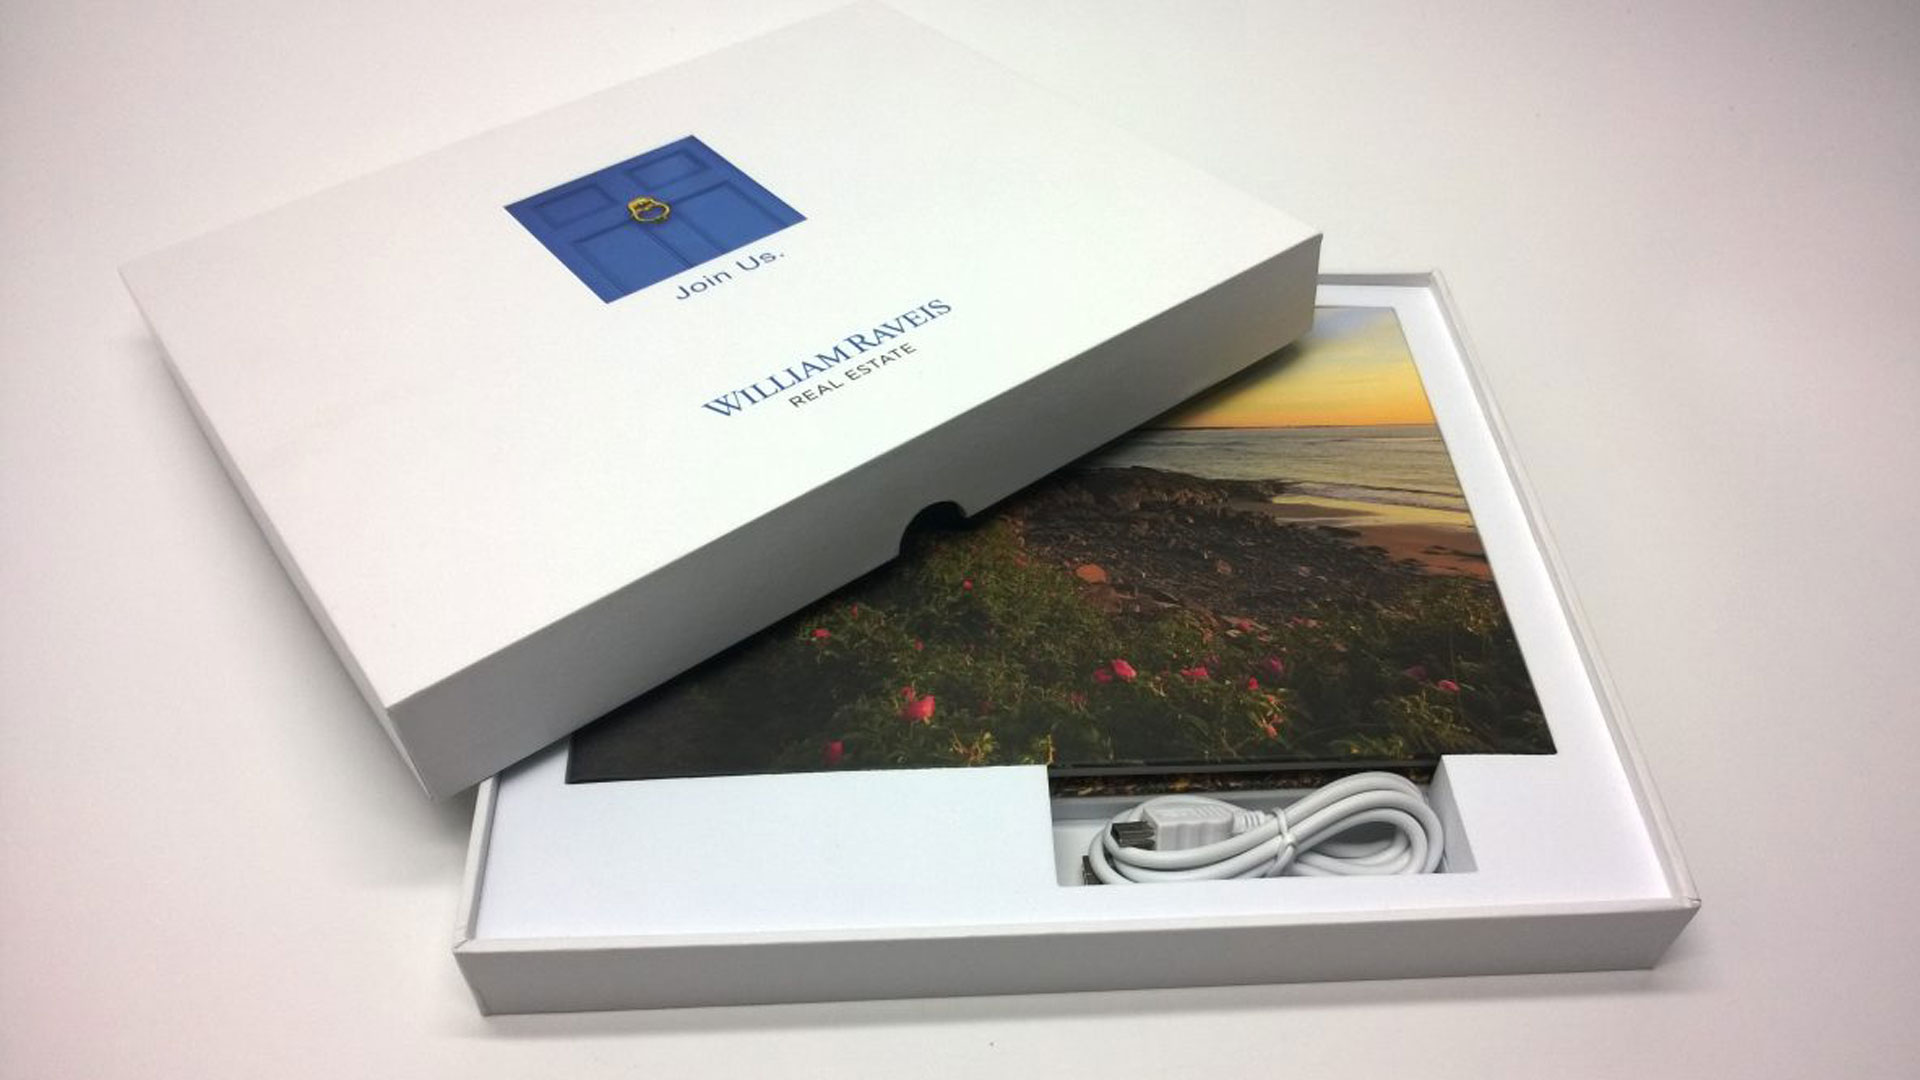 8x6-inch hardcover video brochure and presentation box